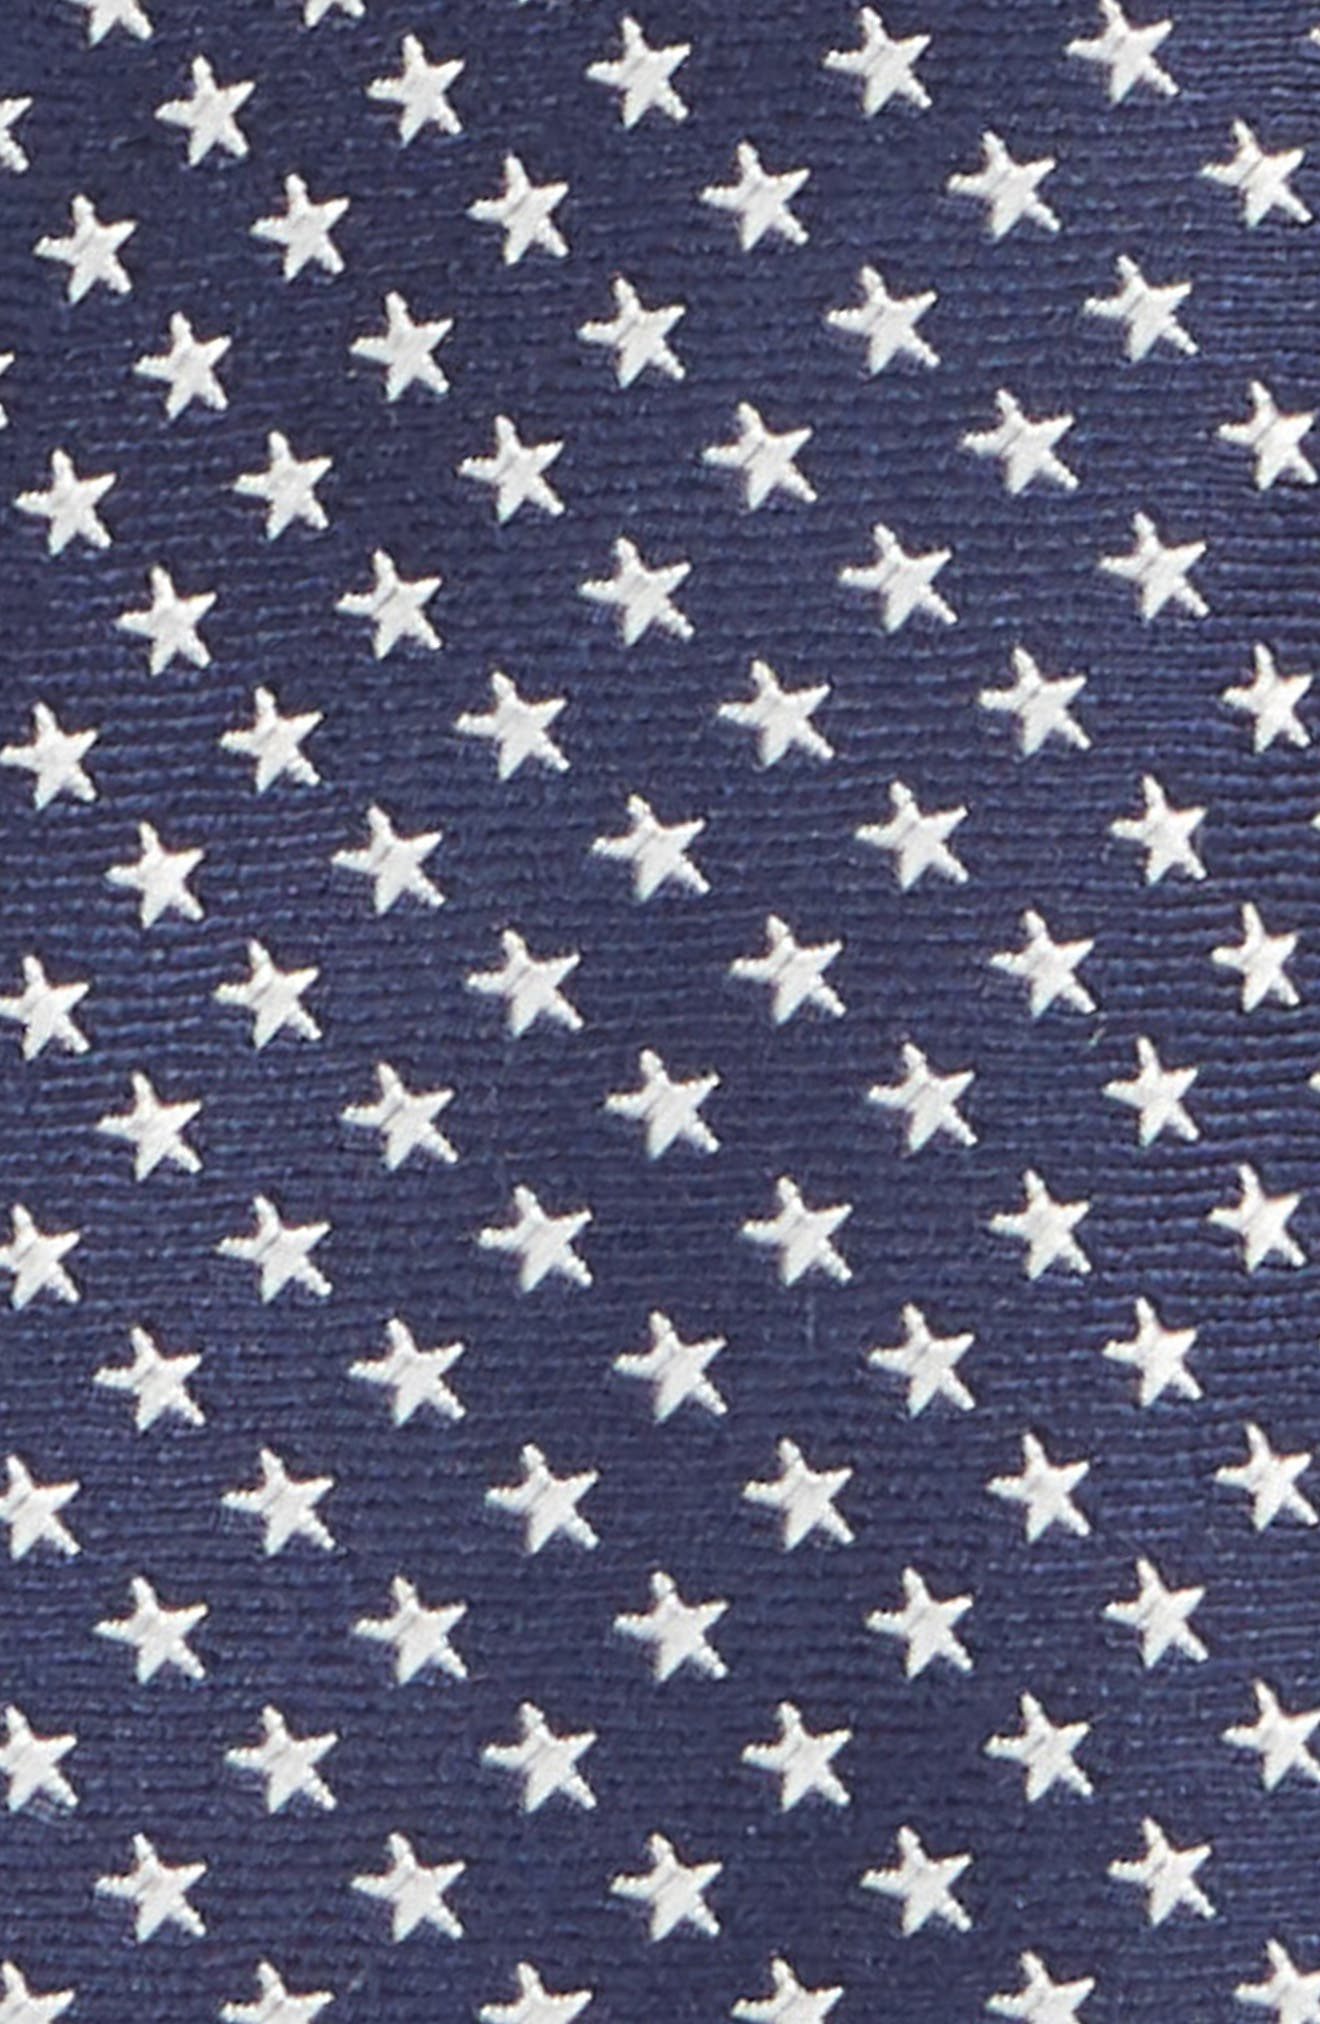 Stella Americana Silk Tie,                             Alternate thumbnail 2, color,                             411